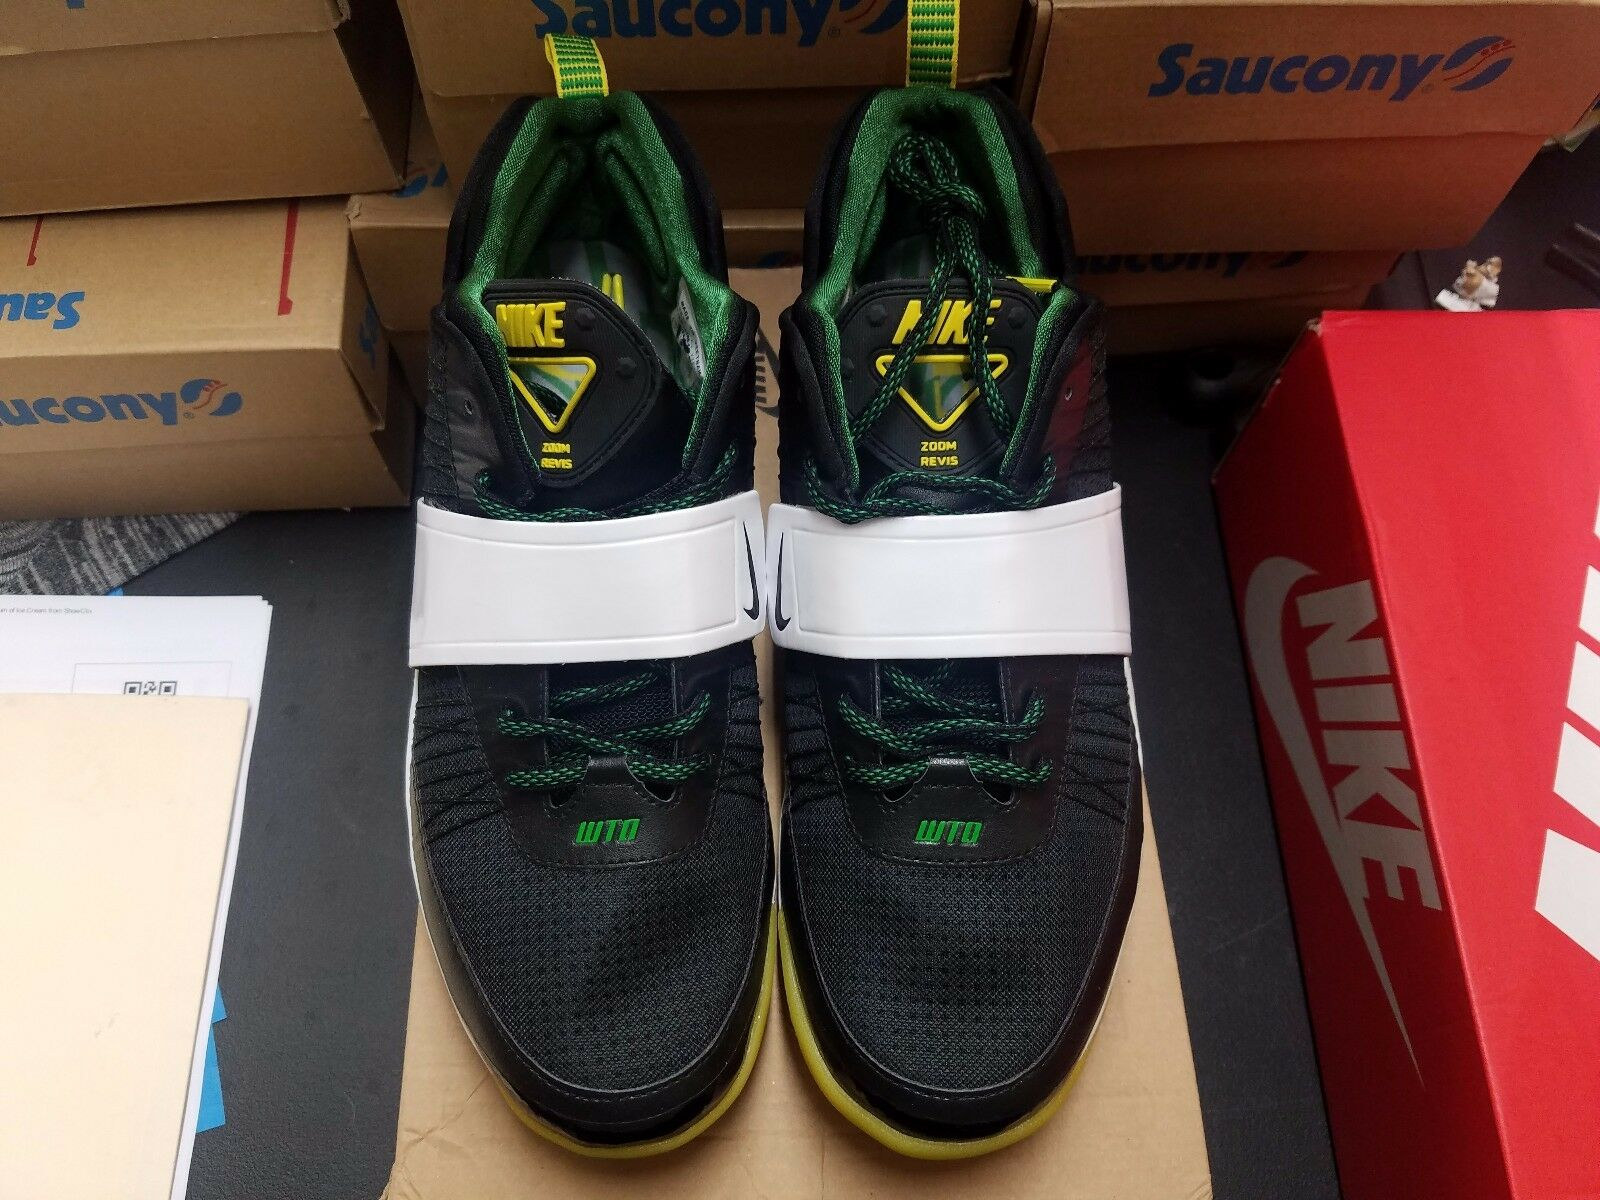 Nike Zoom Revis Size 11.5 Oregon Ducks PE Sample Bears 112 Promo VNDS